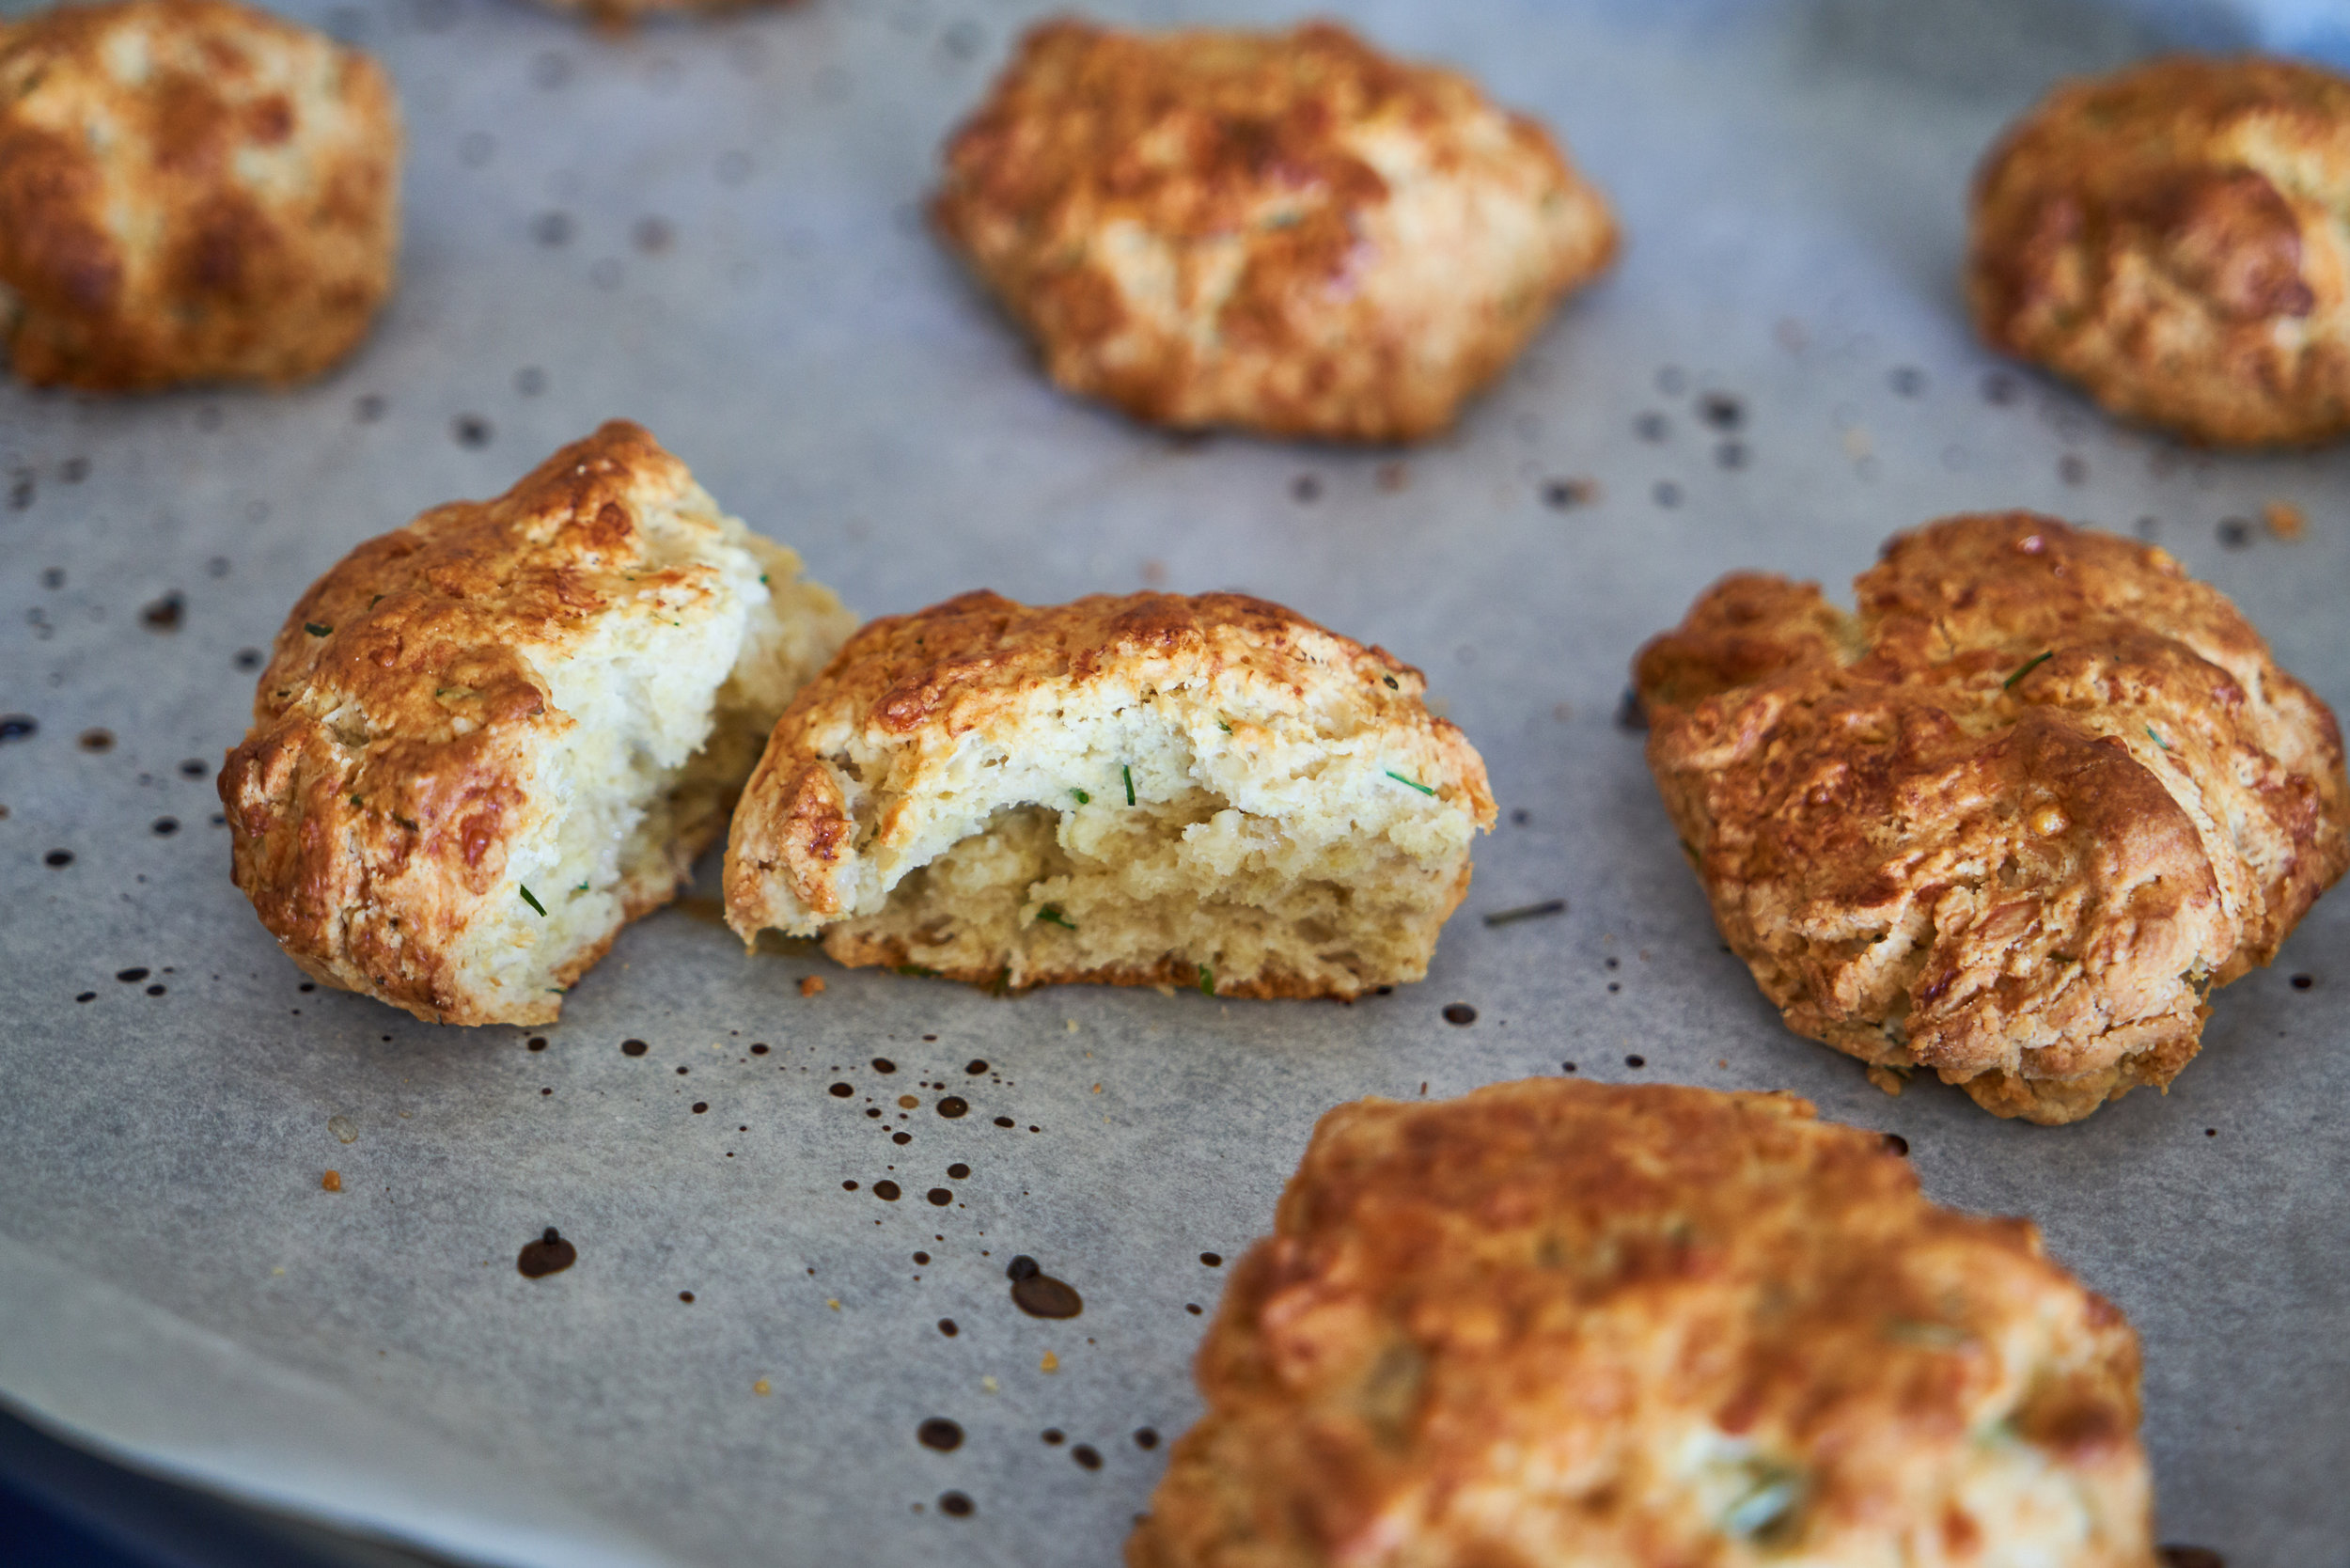 Savory Sourdough Scones/Biscuits | In Carina's Kitchen